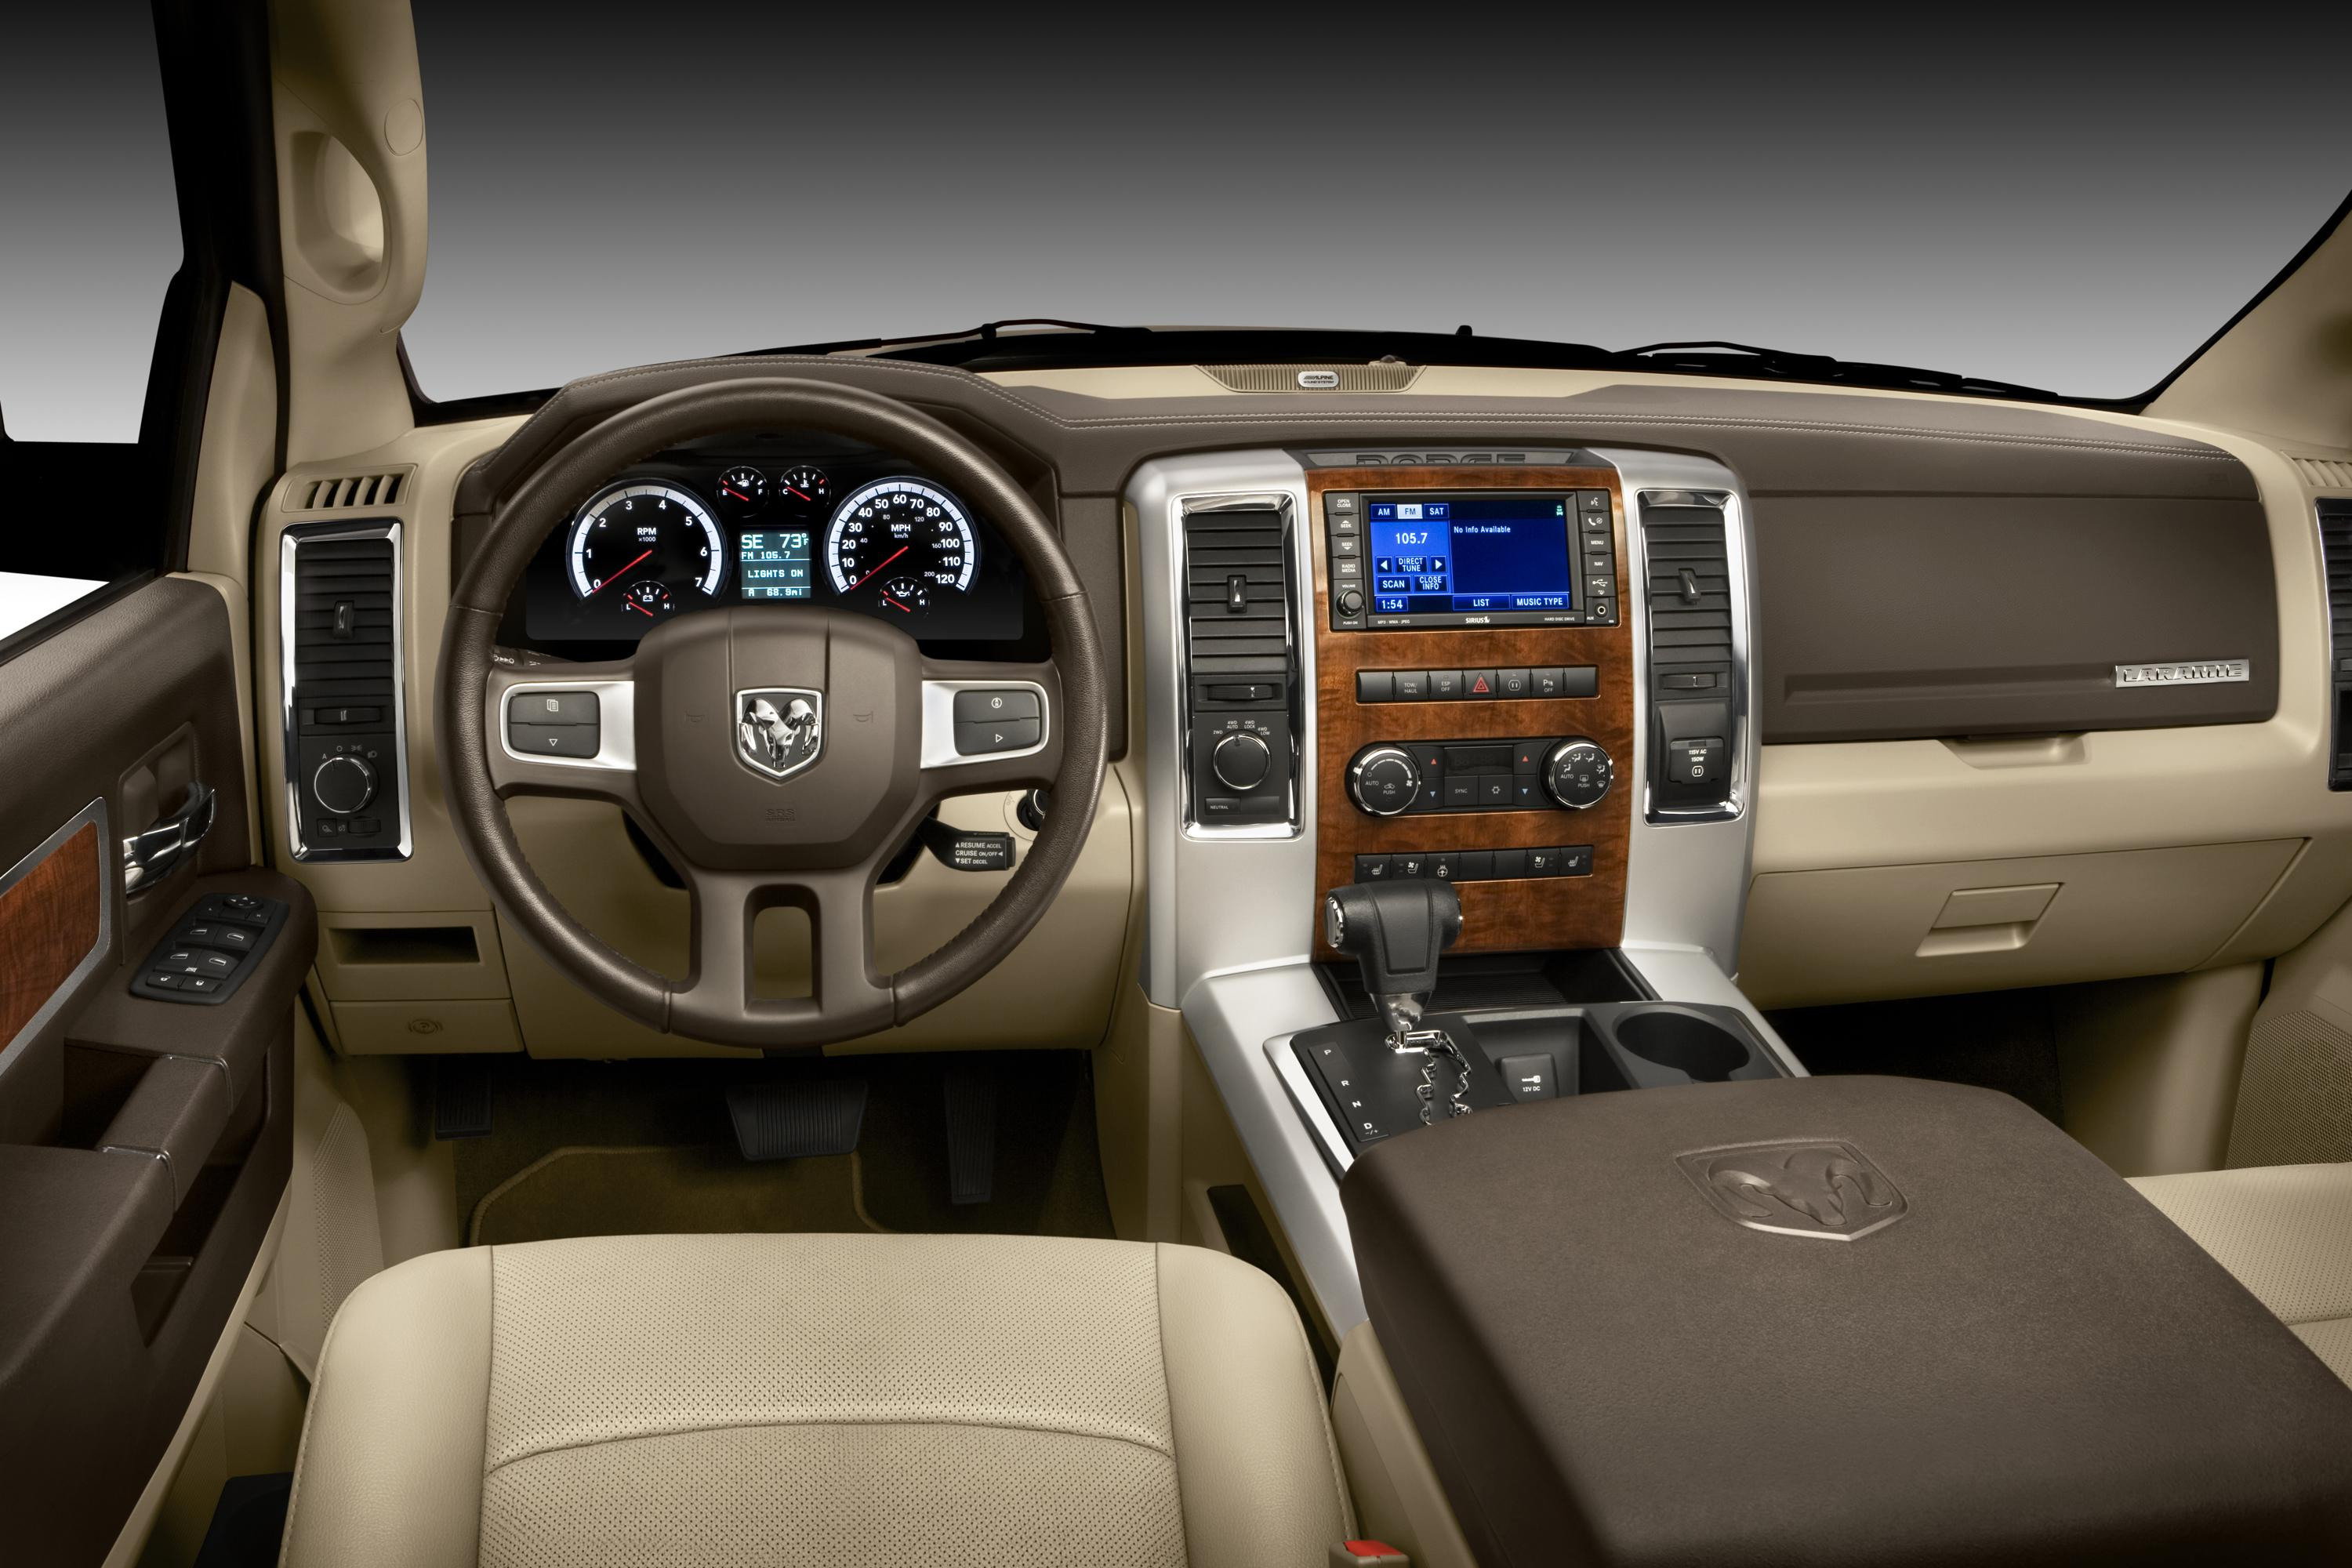 All New 2009 Dodge Ram Named Quot Full Size Pickup Truck Of Texas Quot